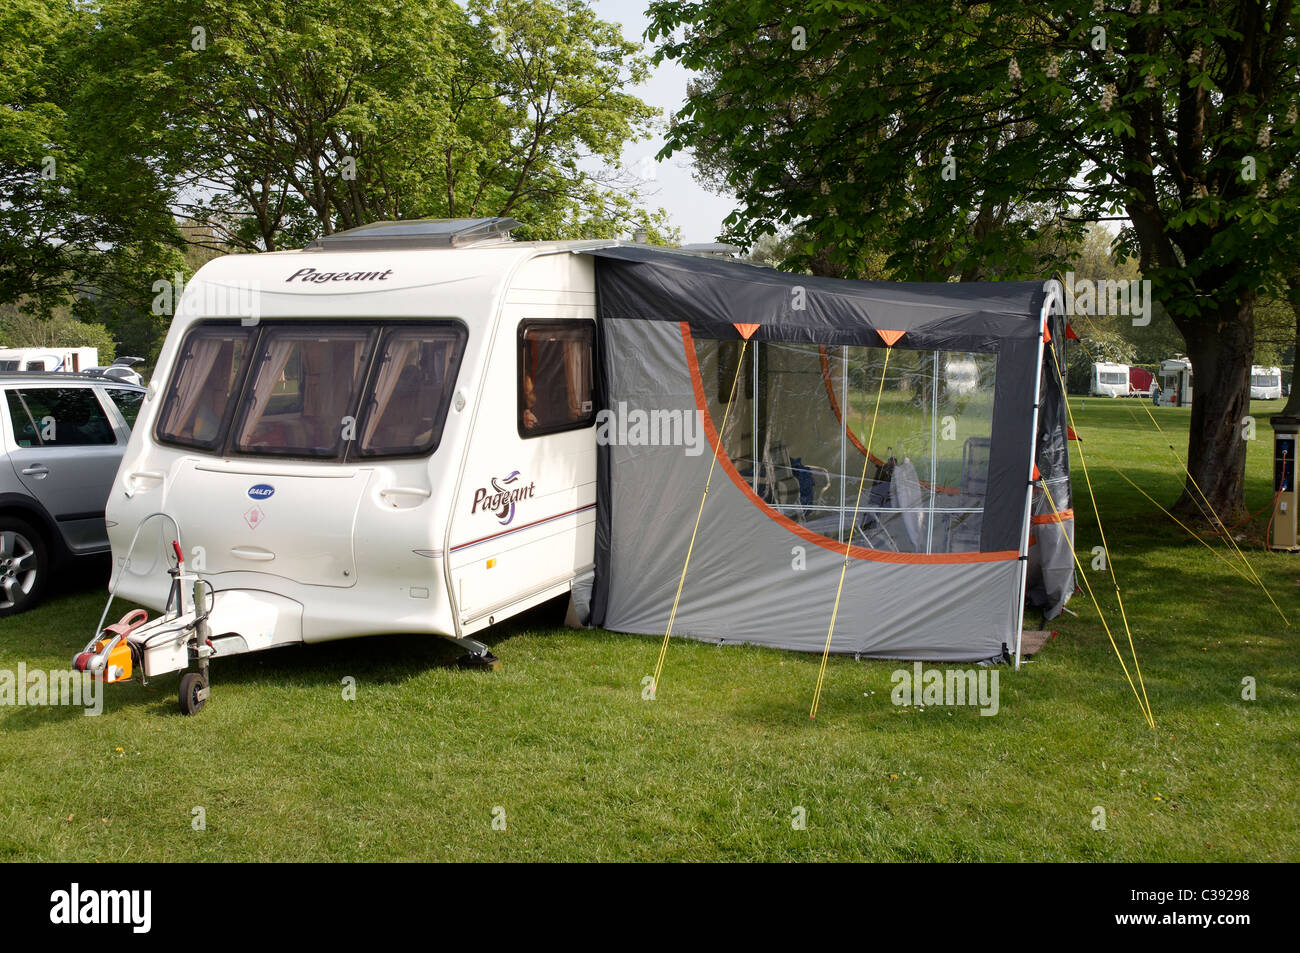 Bailey Pageant Series 3 Caravan With Lightweight Awning On A Grass Pitch At Blackmore Club Site